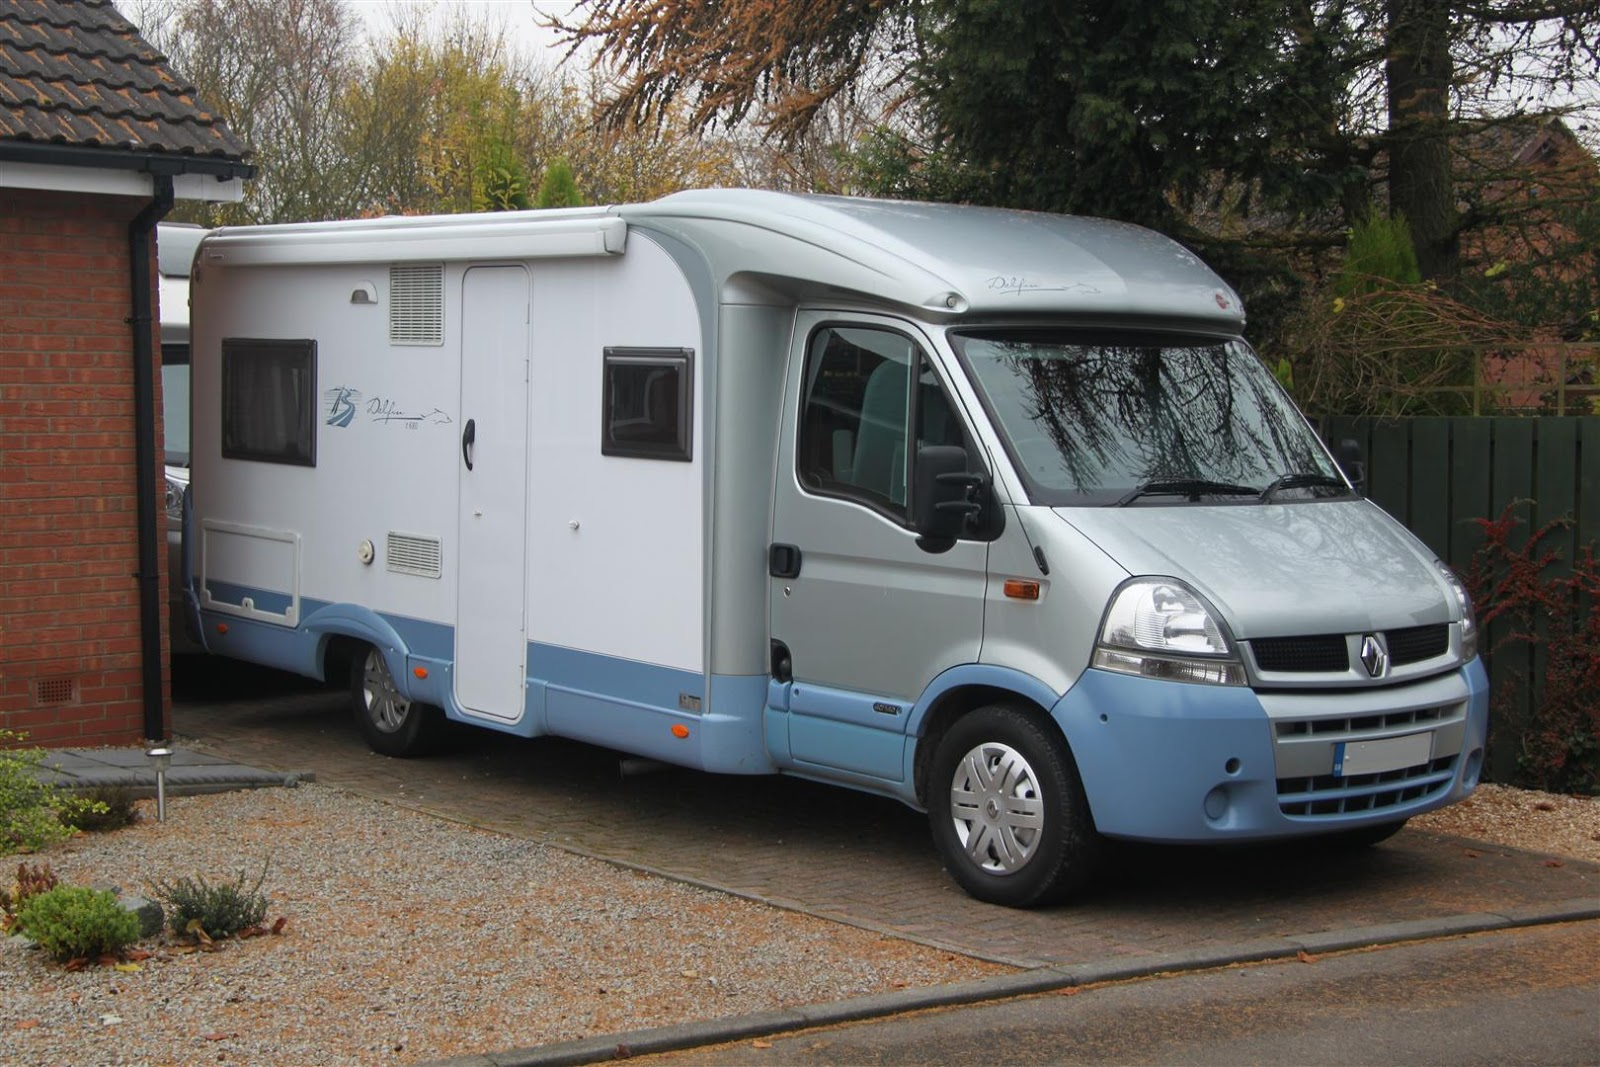 Awesome  Jpeg 637kB MOTORHOMES FOR SALE BY OWNER IN GERMANY  Best RV Review